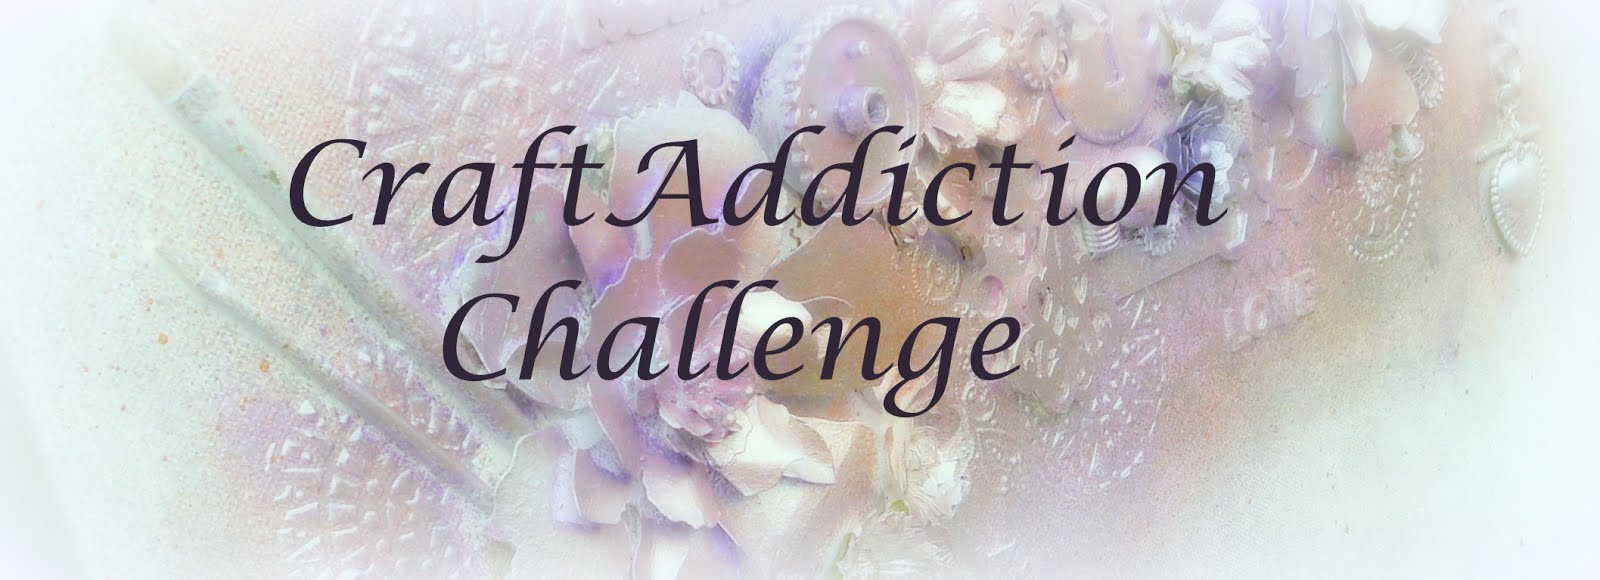 Craft Addiction Challenge Blog